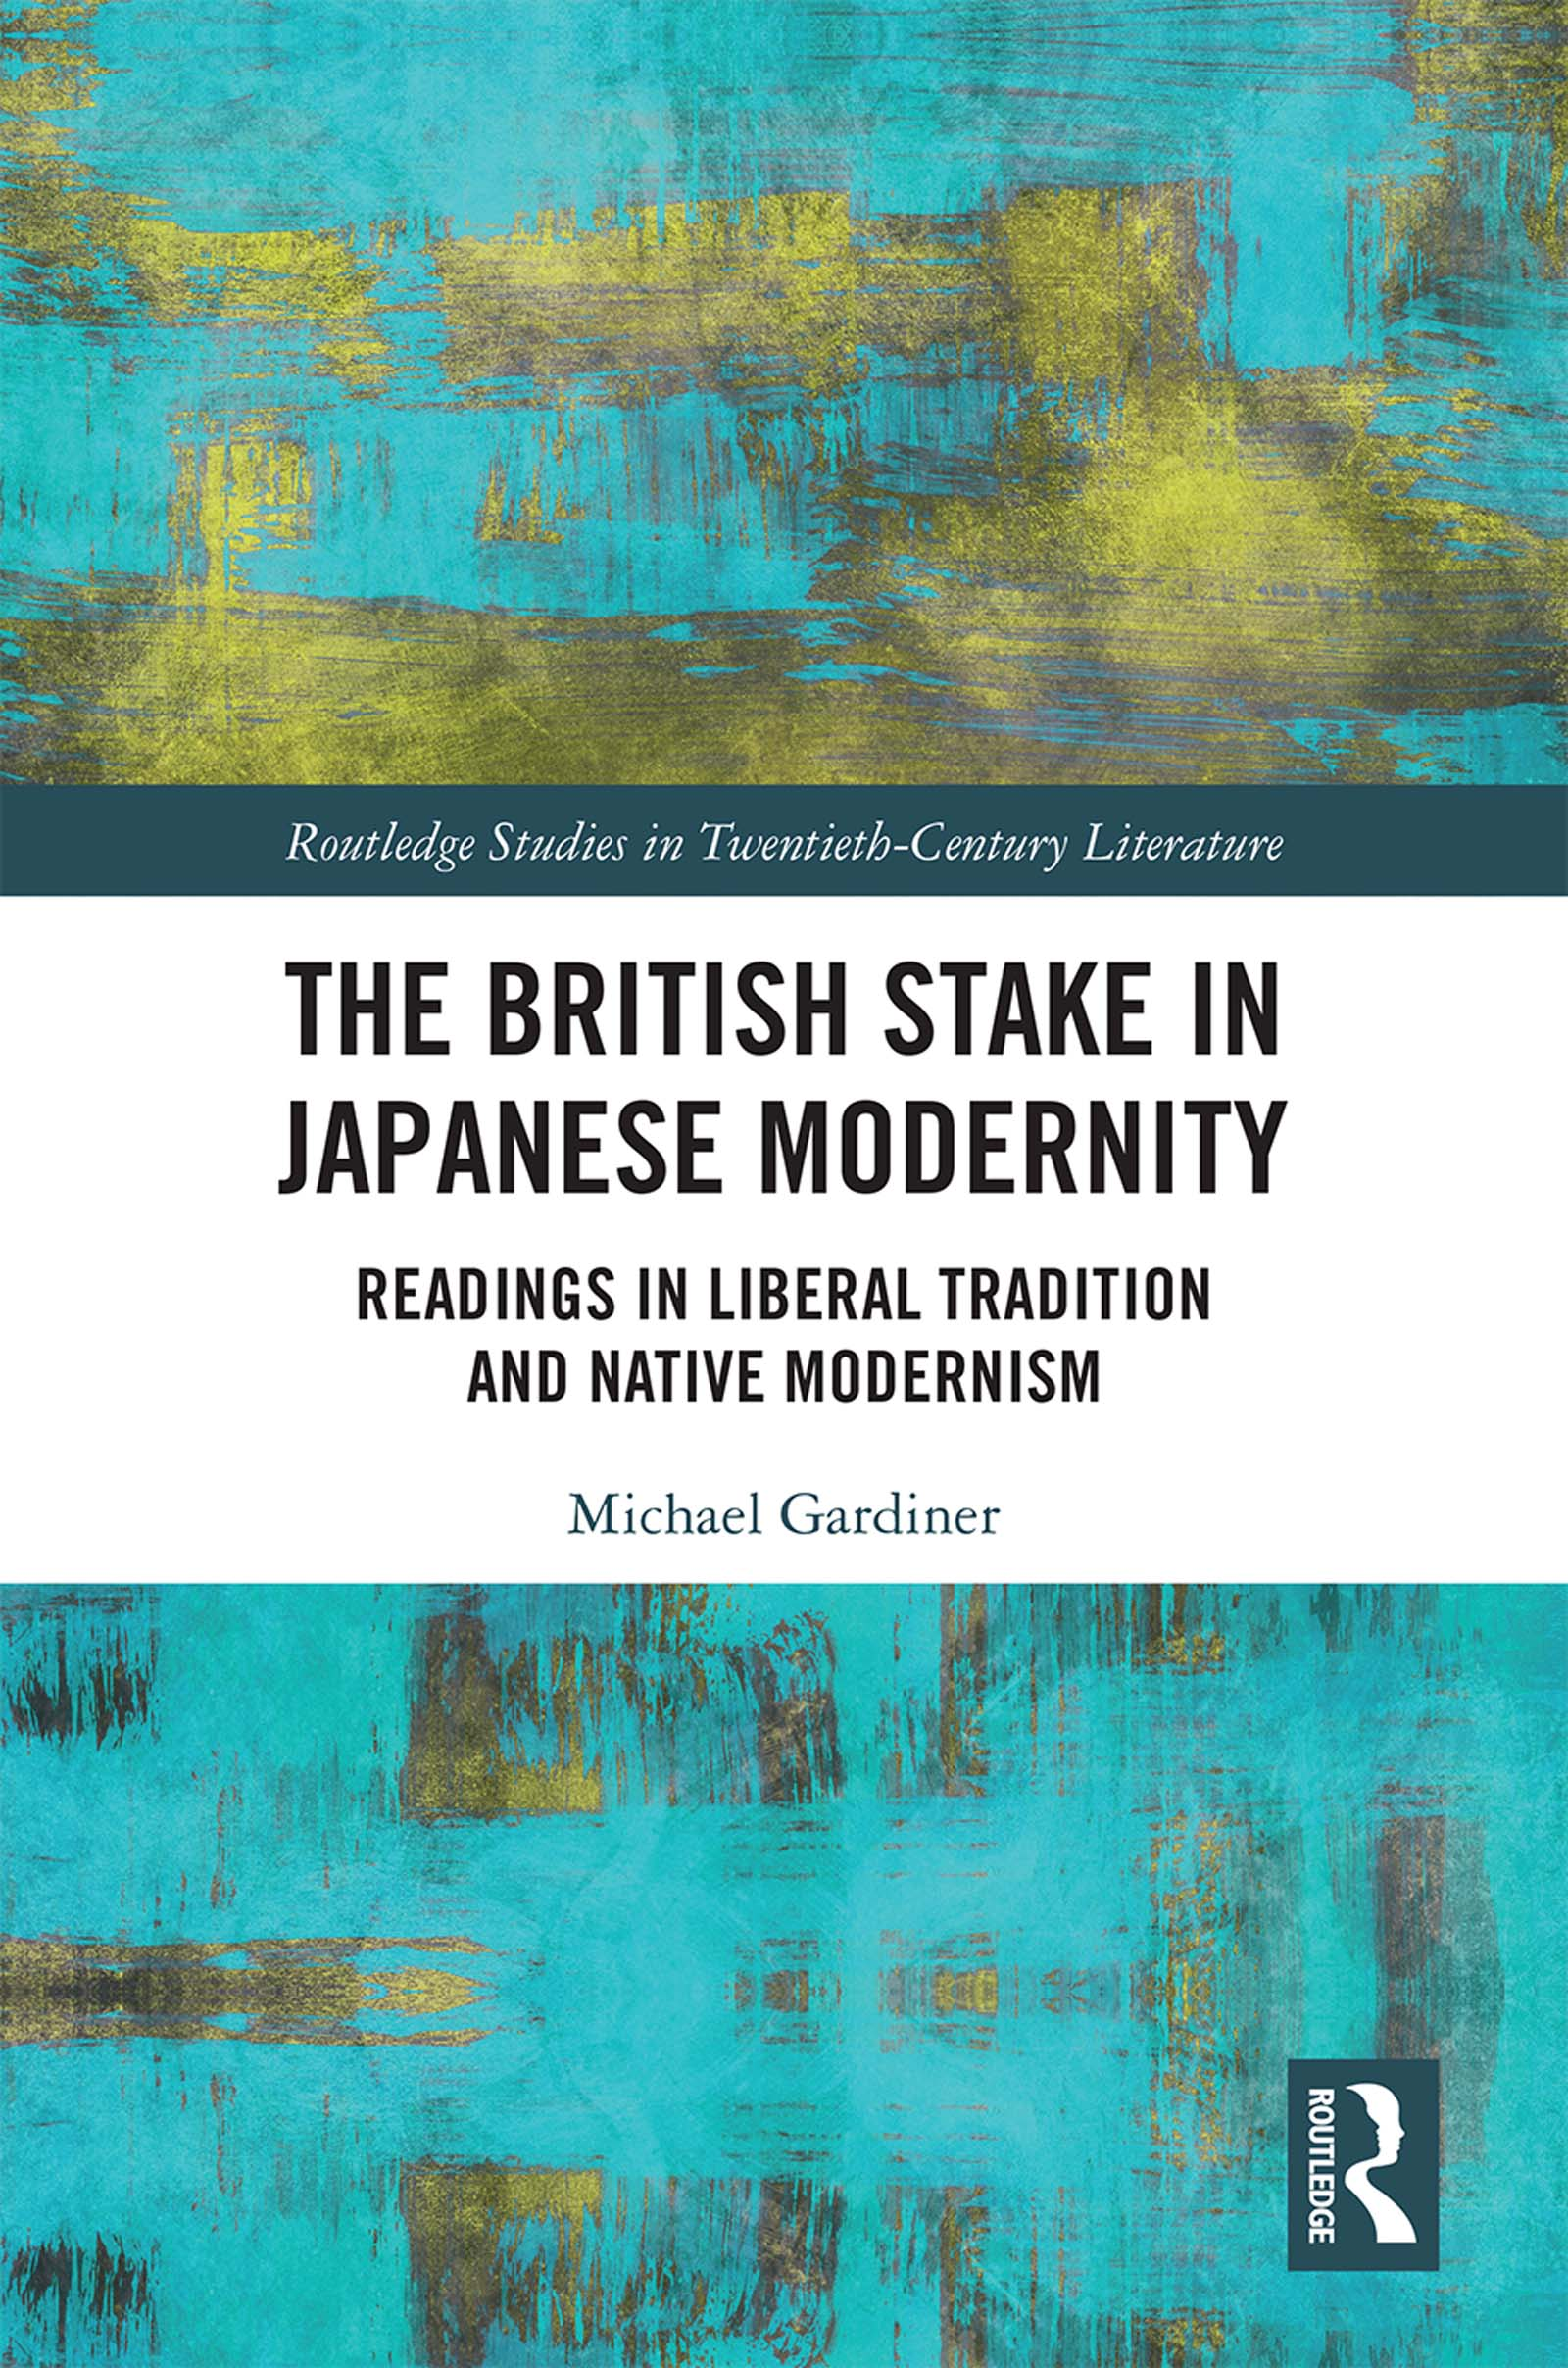 The British Stake In Japanese Modernity: Readings in Liberal Tradition and Native Modernism book cover